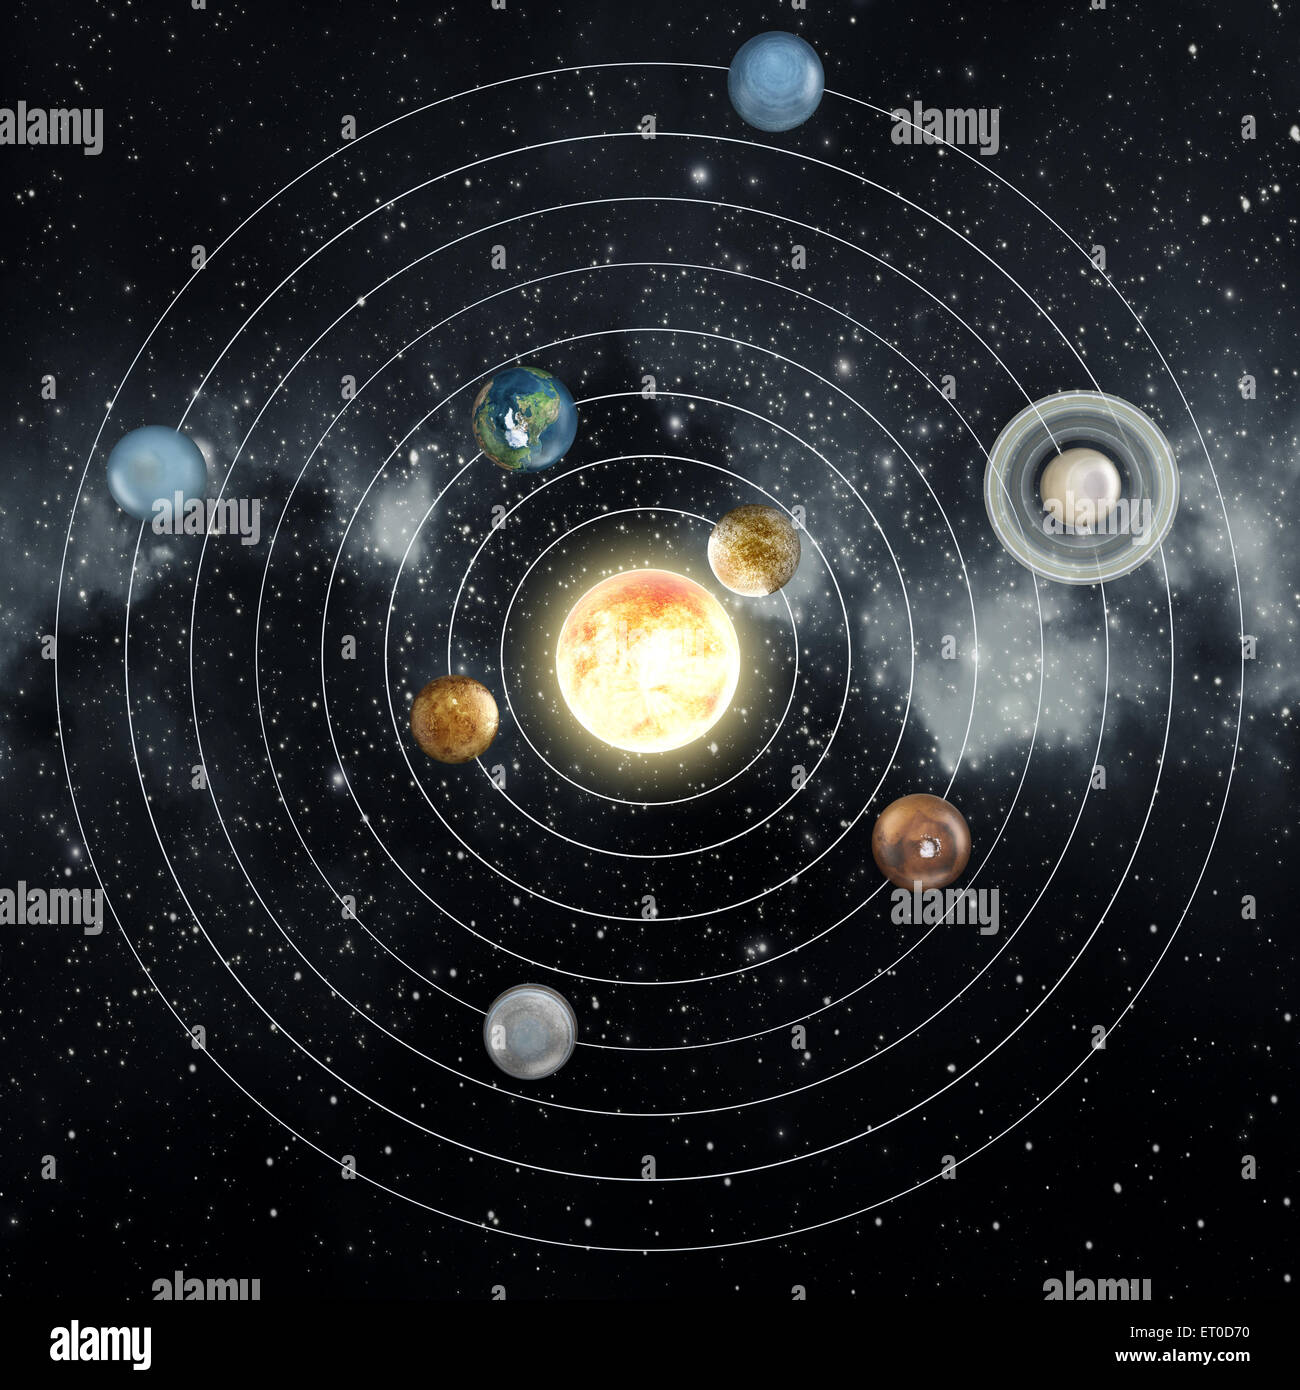 solar system diagram in the space stock photo 83603604 alamy rh alamy com diagram of solar system for kids diagram of solar system orbits